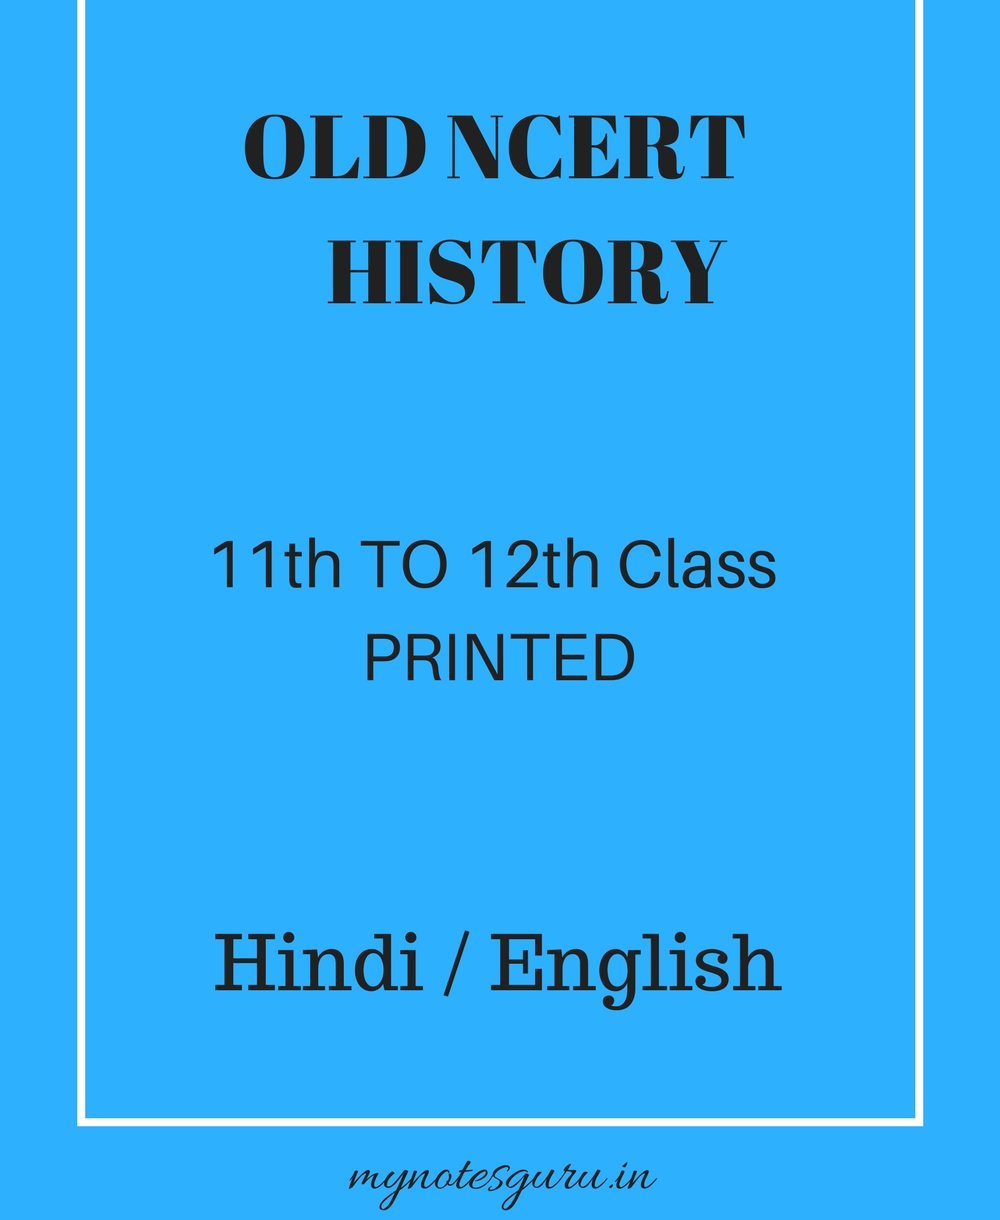 History (11th to 12th class) in English / Hindi – History – Old NCERT –  Printed Booklets